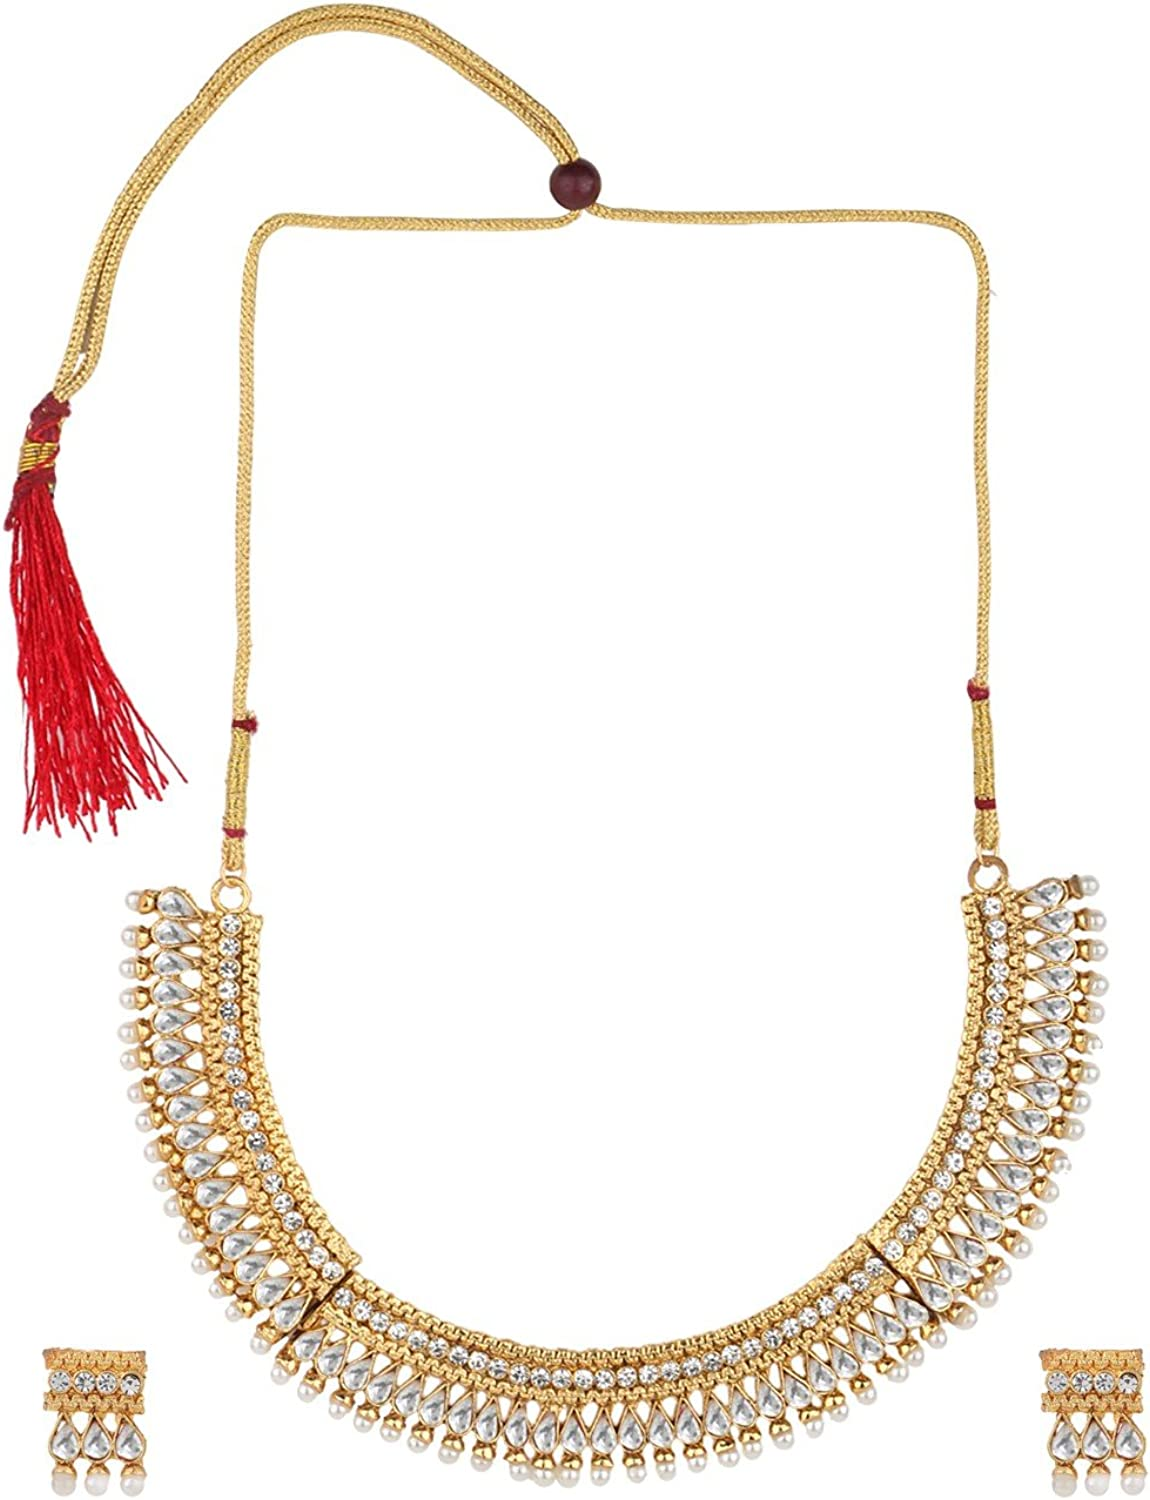 Efulgenz Indian Bollywood Traditional White Rhinestone with Faux Pearl Kundan Polki Heavy Bridal Designer Jewelry Choker Necklace Set in Antique 18K Gold Tone for Women and Girls